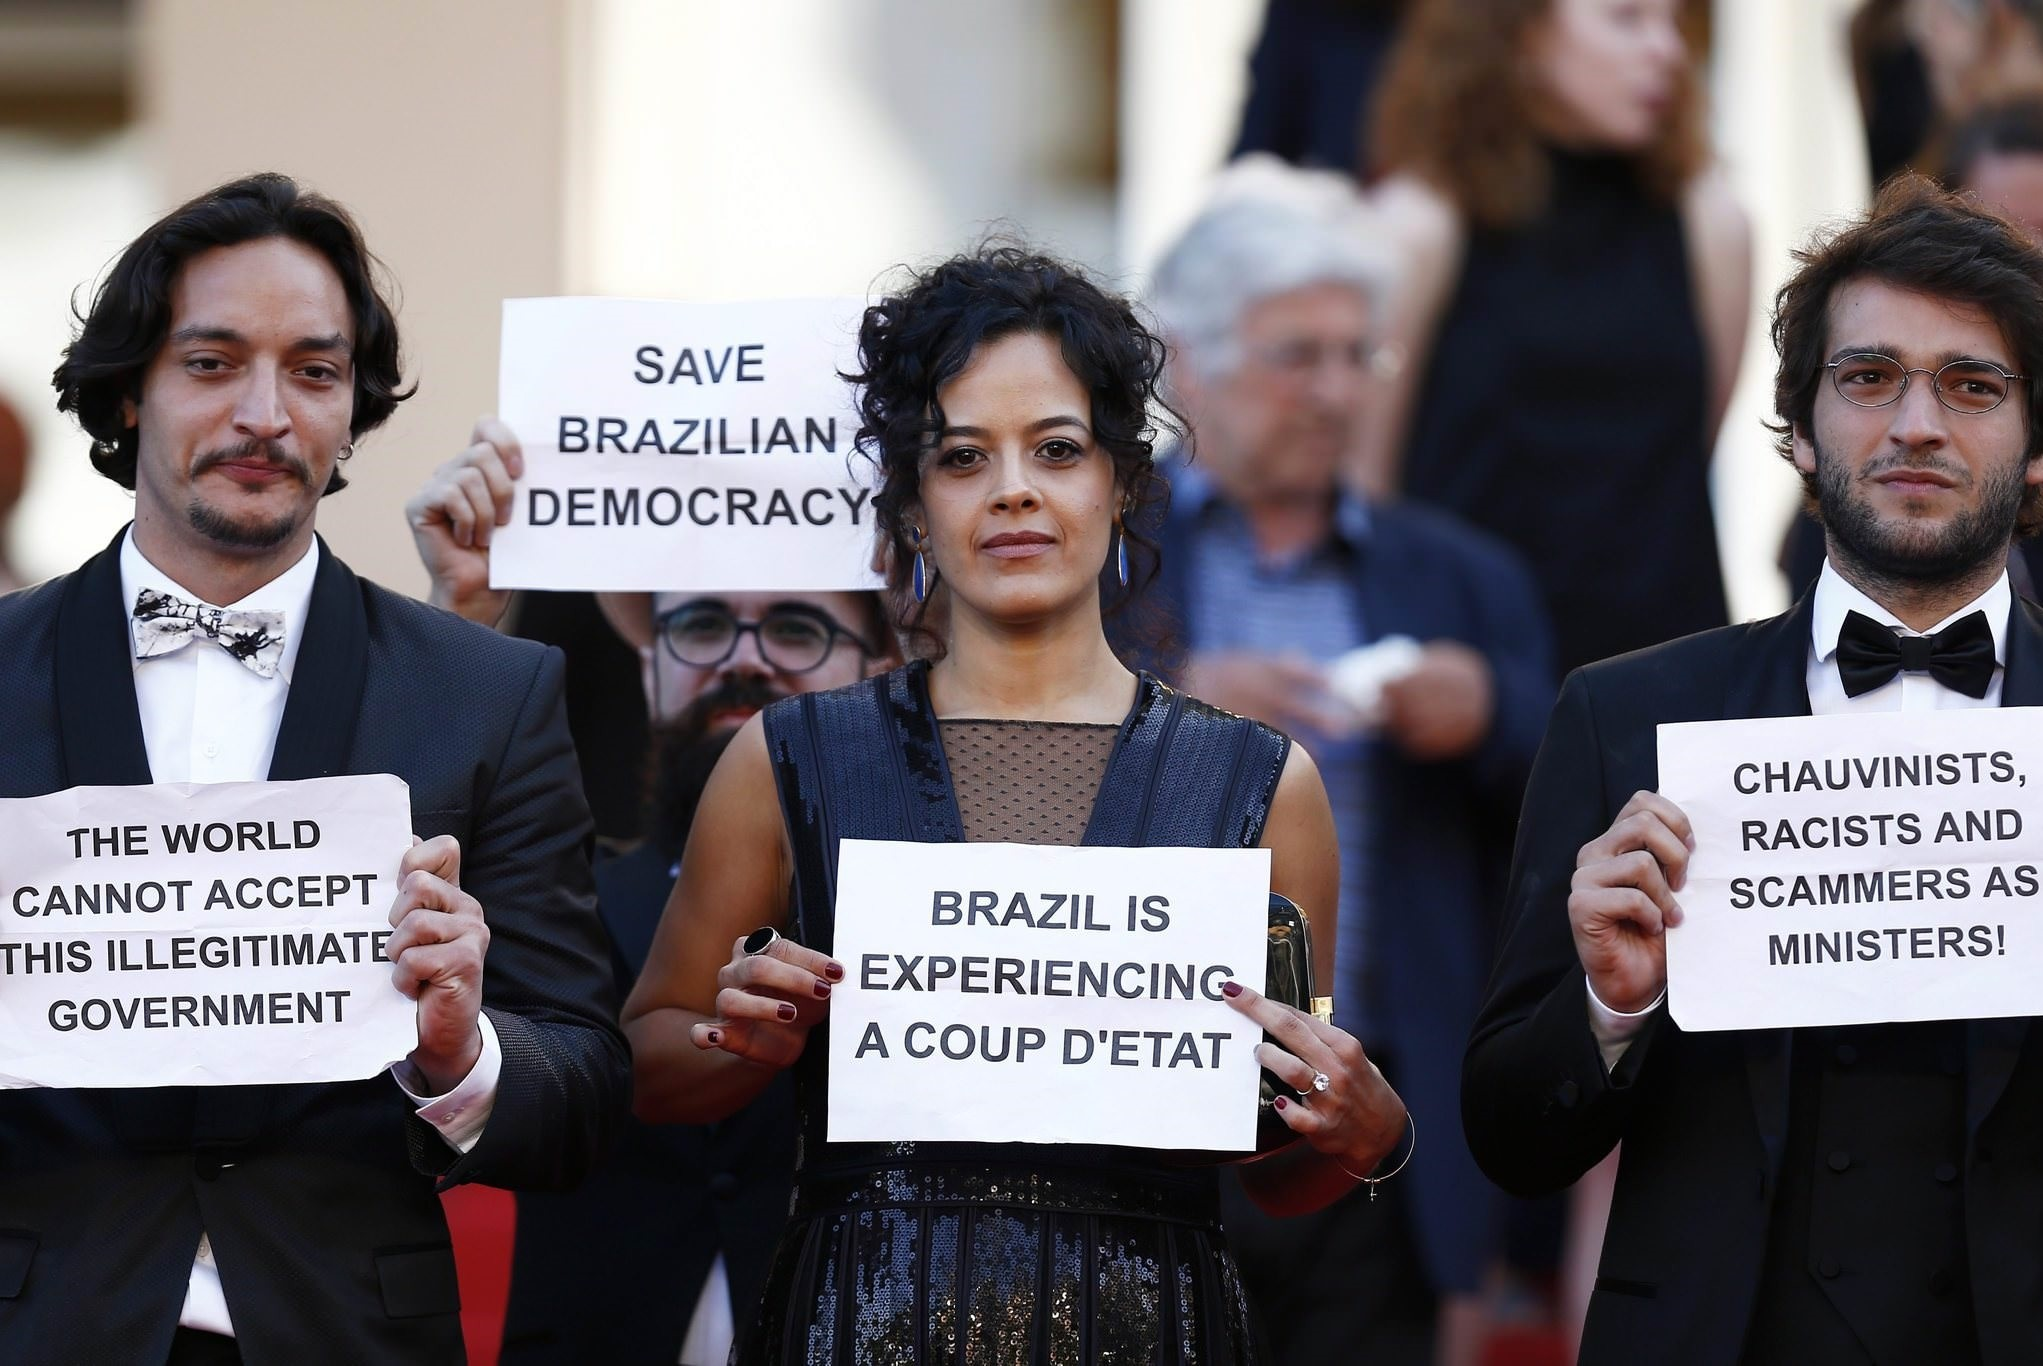 Brazilian actress Maeve Jinkings (C) holds a sign reading 'Brazil is experiencing a coup d'etat' as she leaves after the screening of 'Aquarius' during the 69th annual Cannes Film Festival, in Cannes, France, 17 May 2016. (EPA Photo)